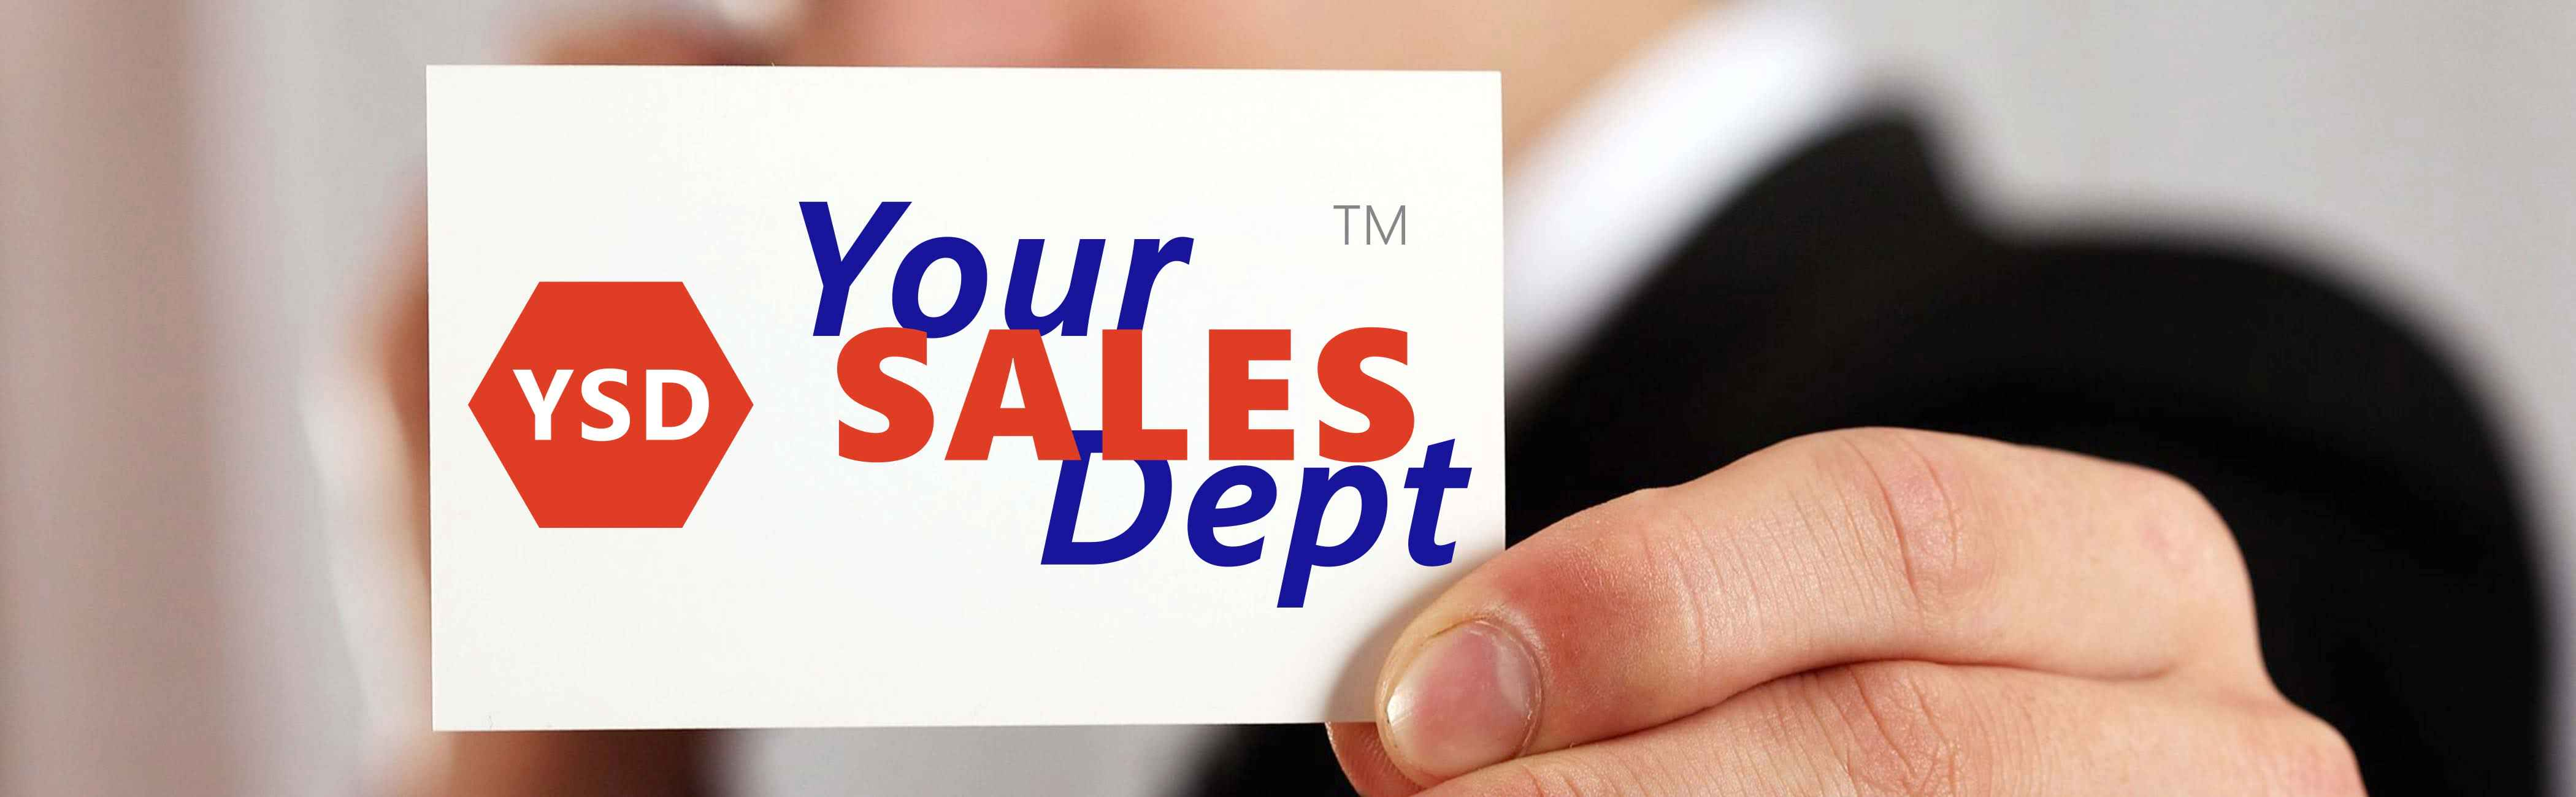 Businessman holding a Your Sales Dept business card.